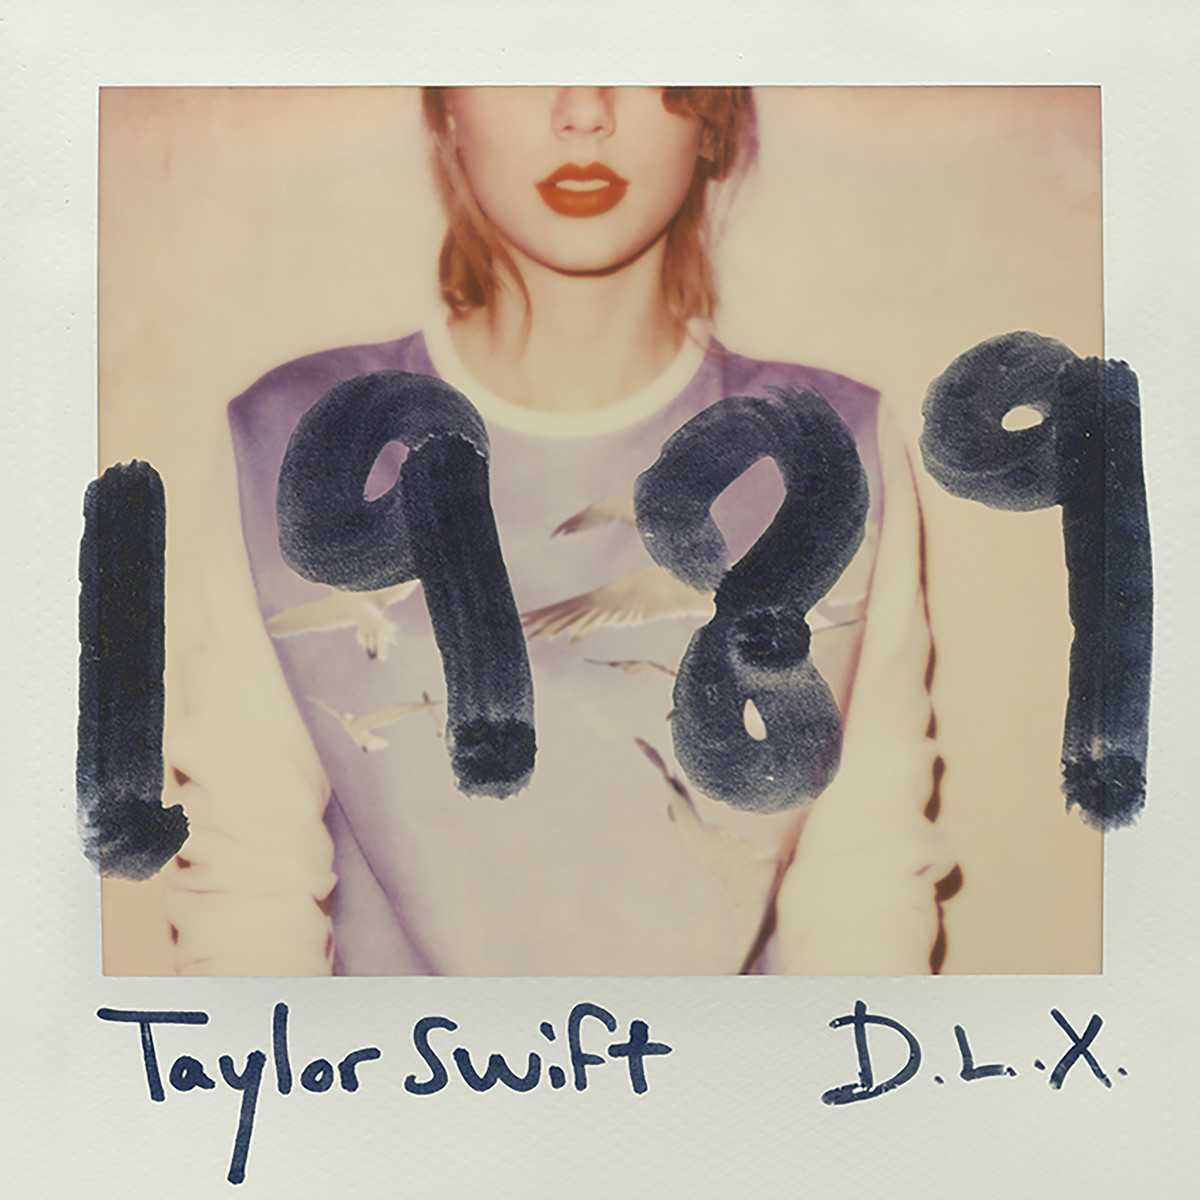 We Are Going Back To 1989 With New Taylor Swift Album | taylor swift